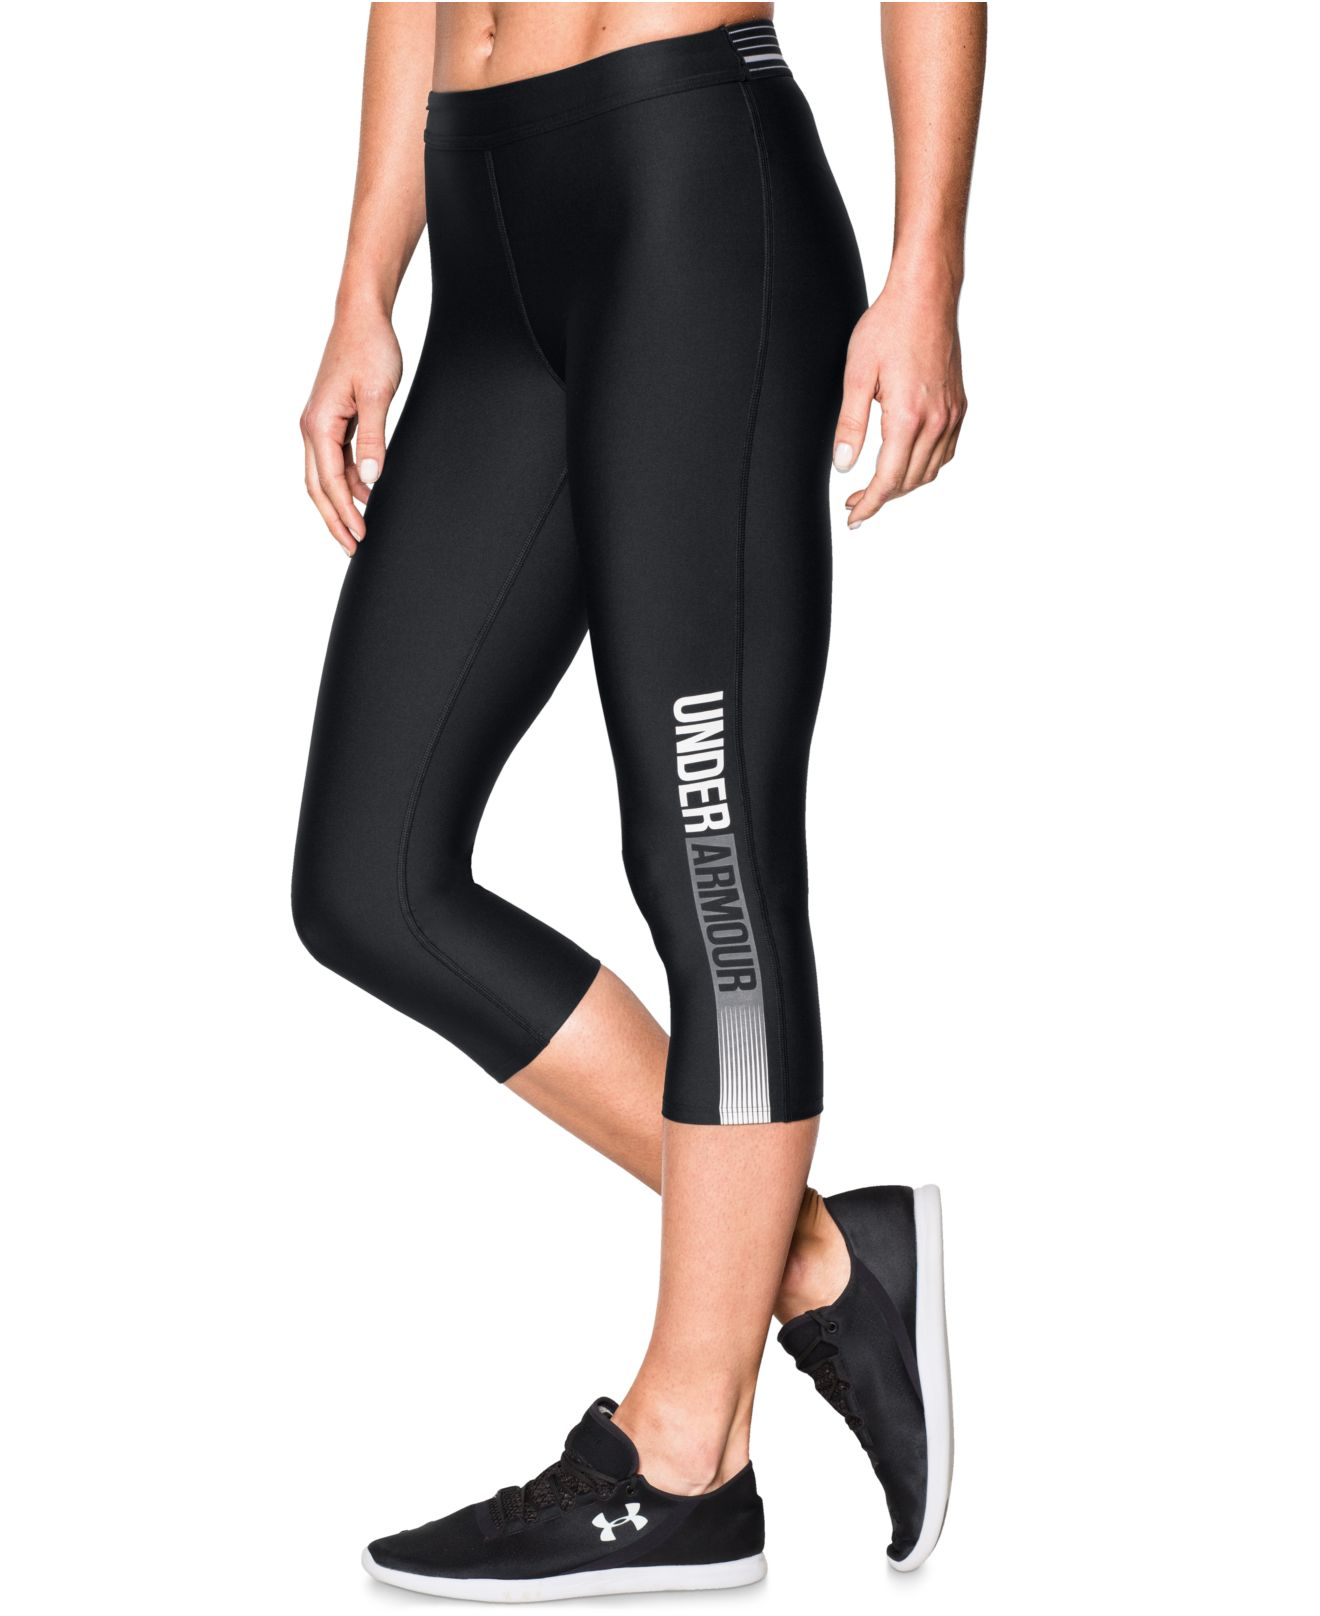 Lyst - Under Armour Heatgearu00ae Graphic Capri Leggings in Black